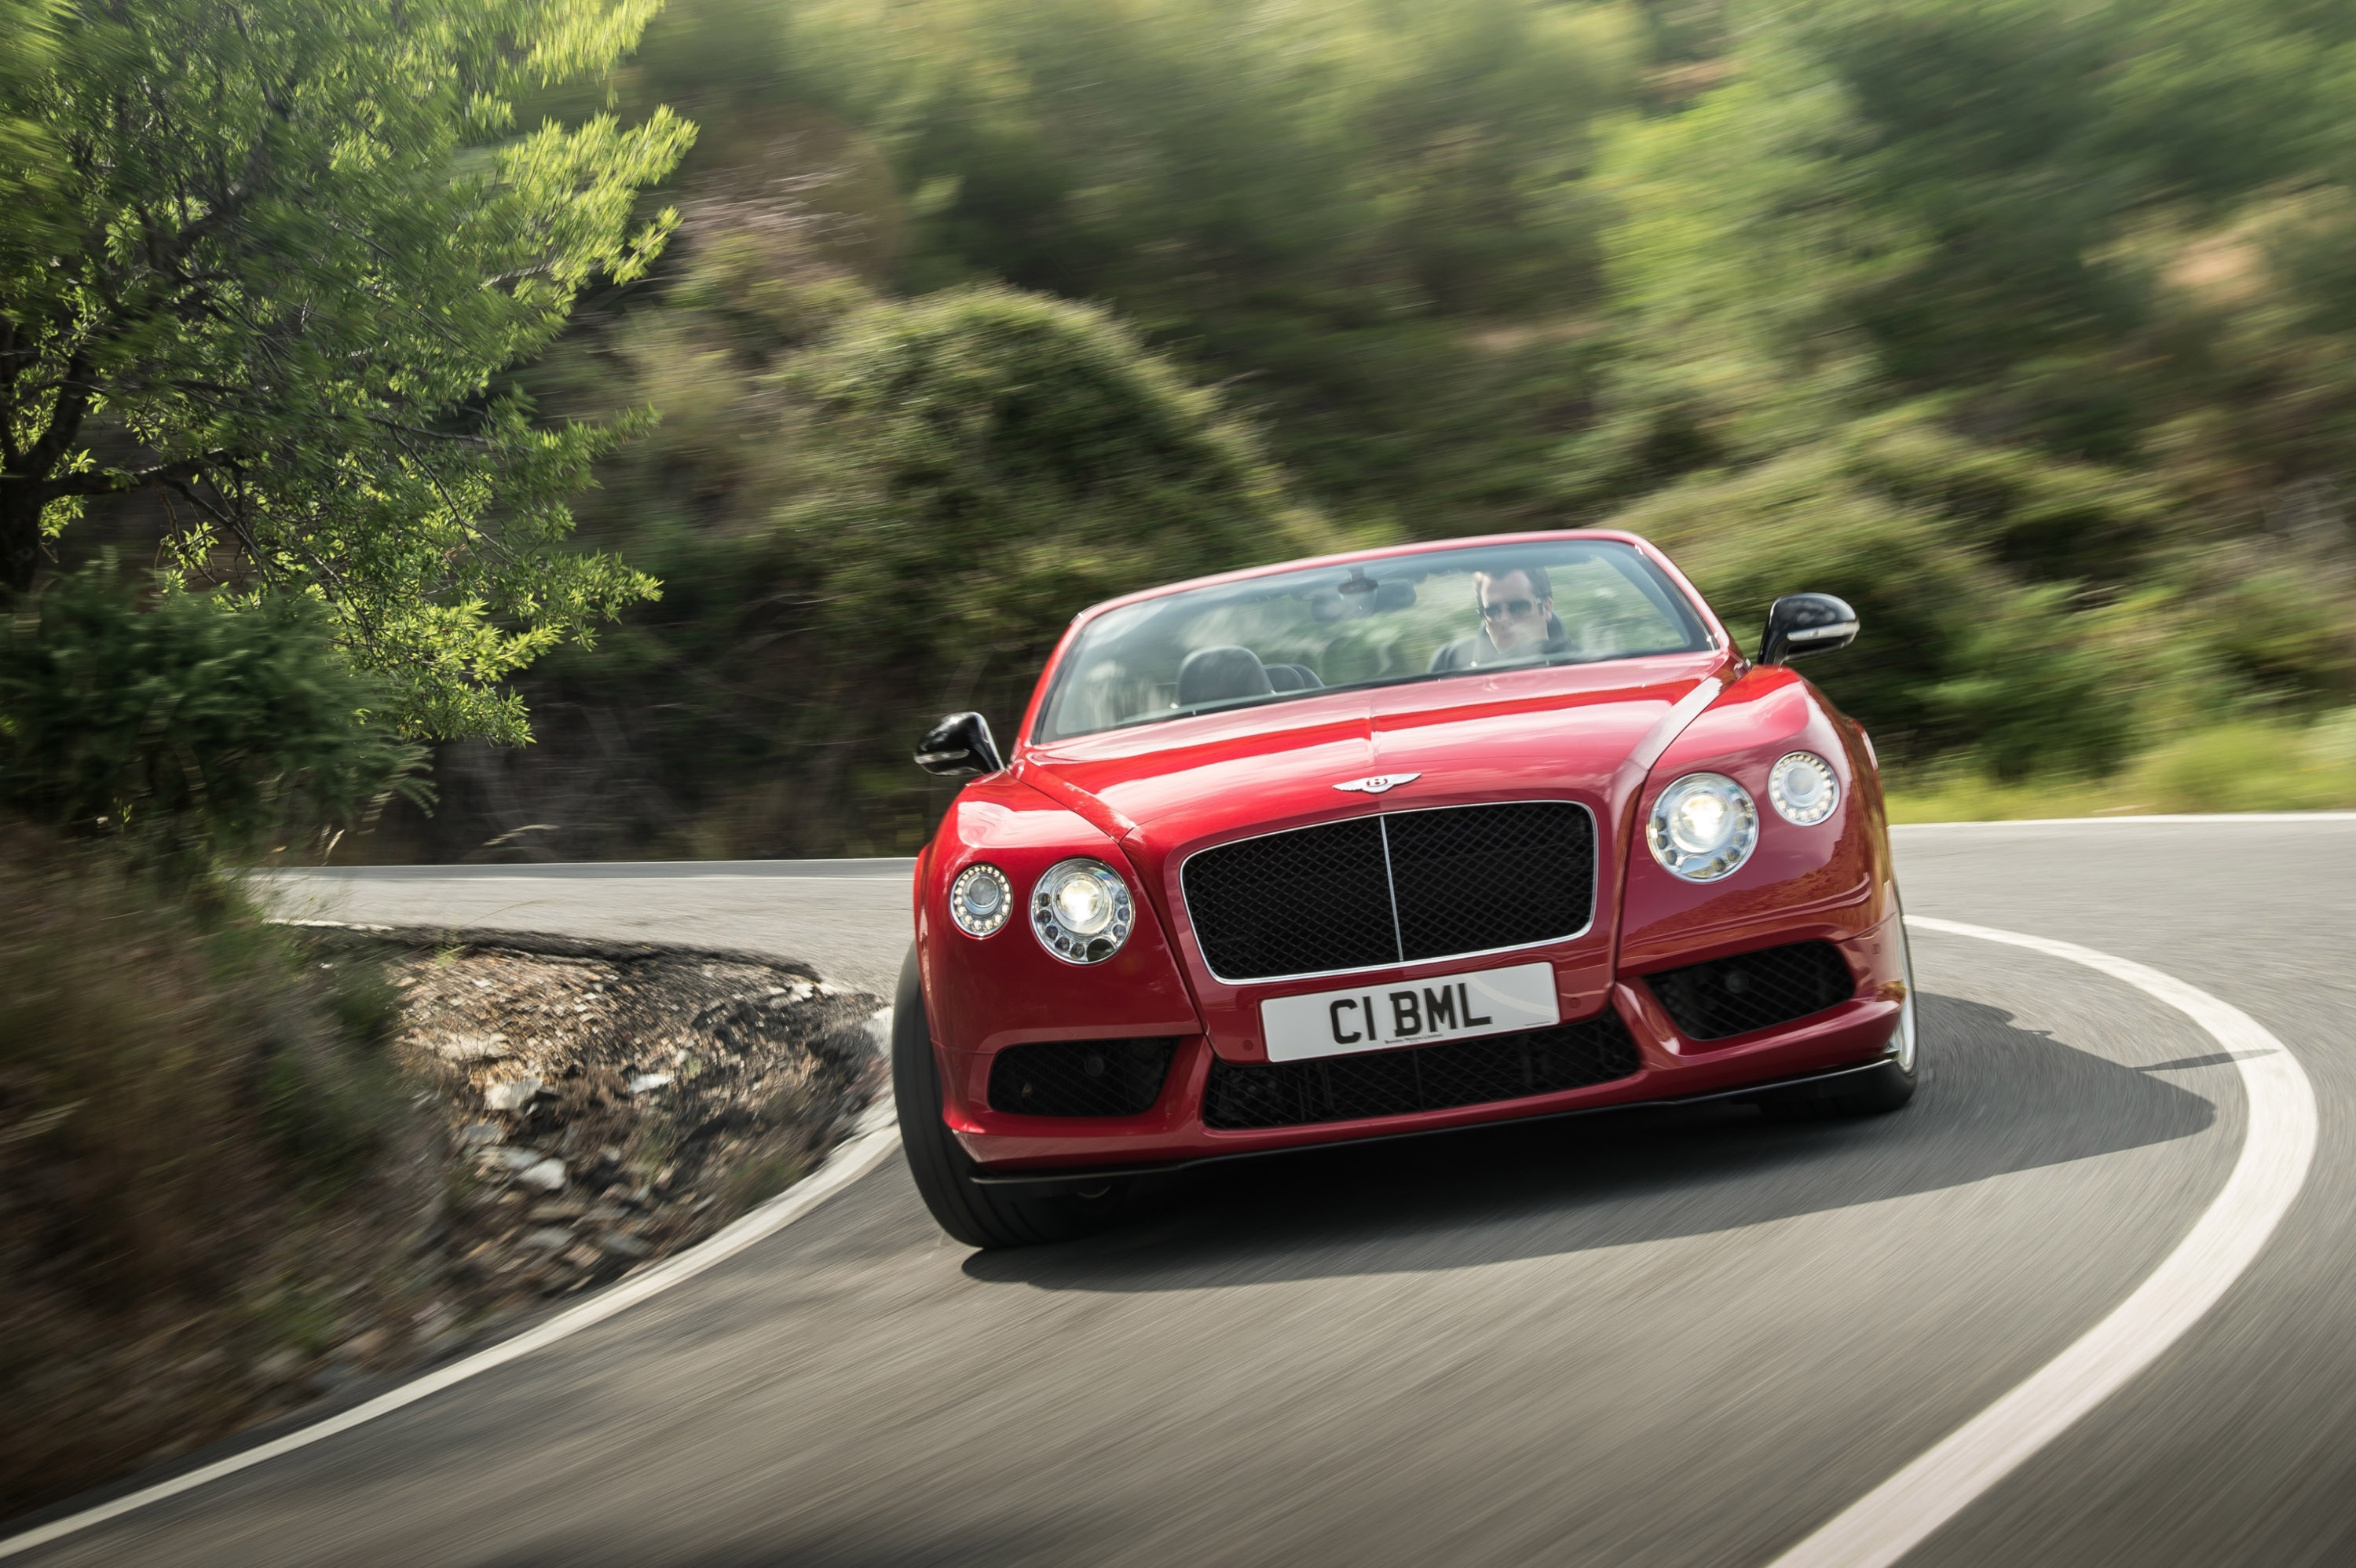 2013 Bentley Continental GT V8 S - 528HP and 680Nm